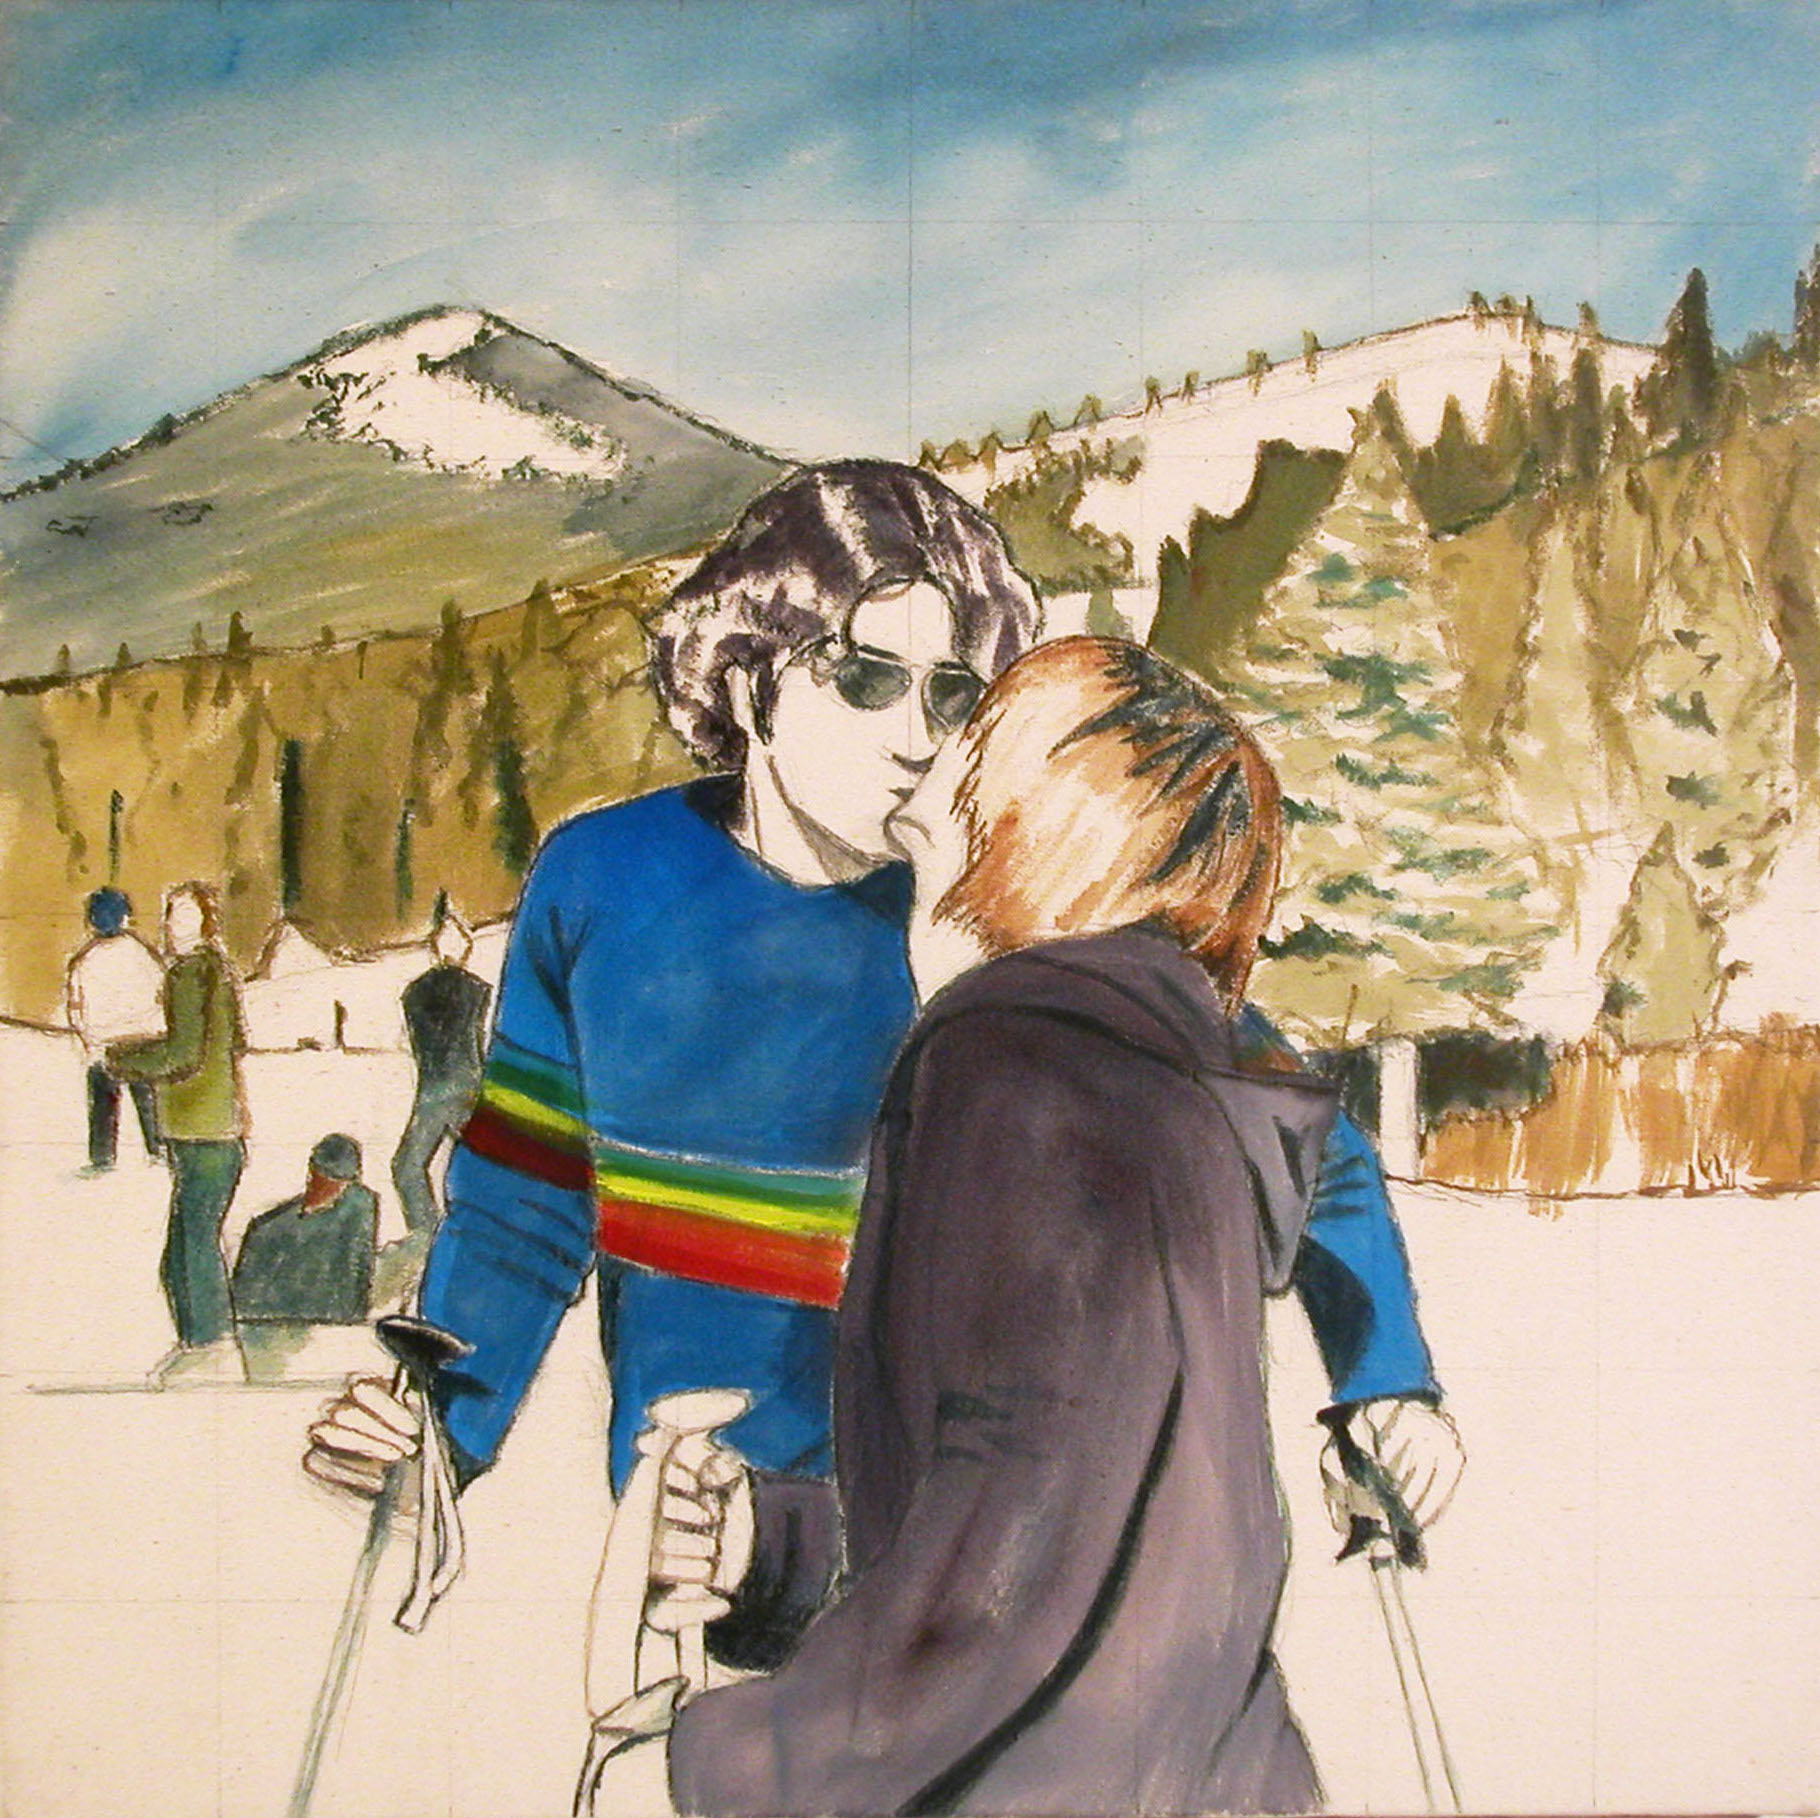 Ski Kiss, 2001, acrylic on canvas, 24 x 24 in.